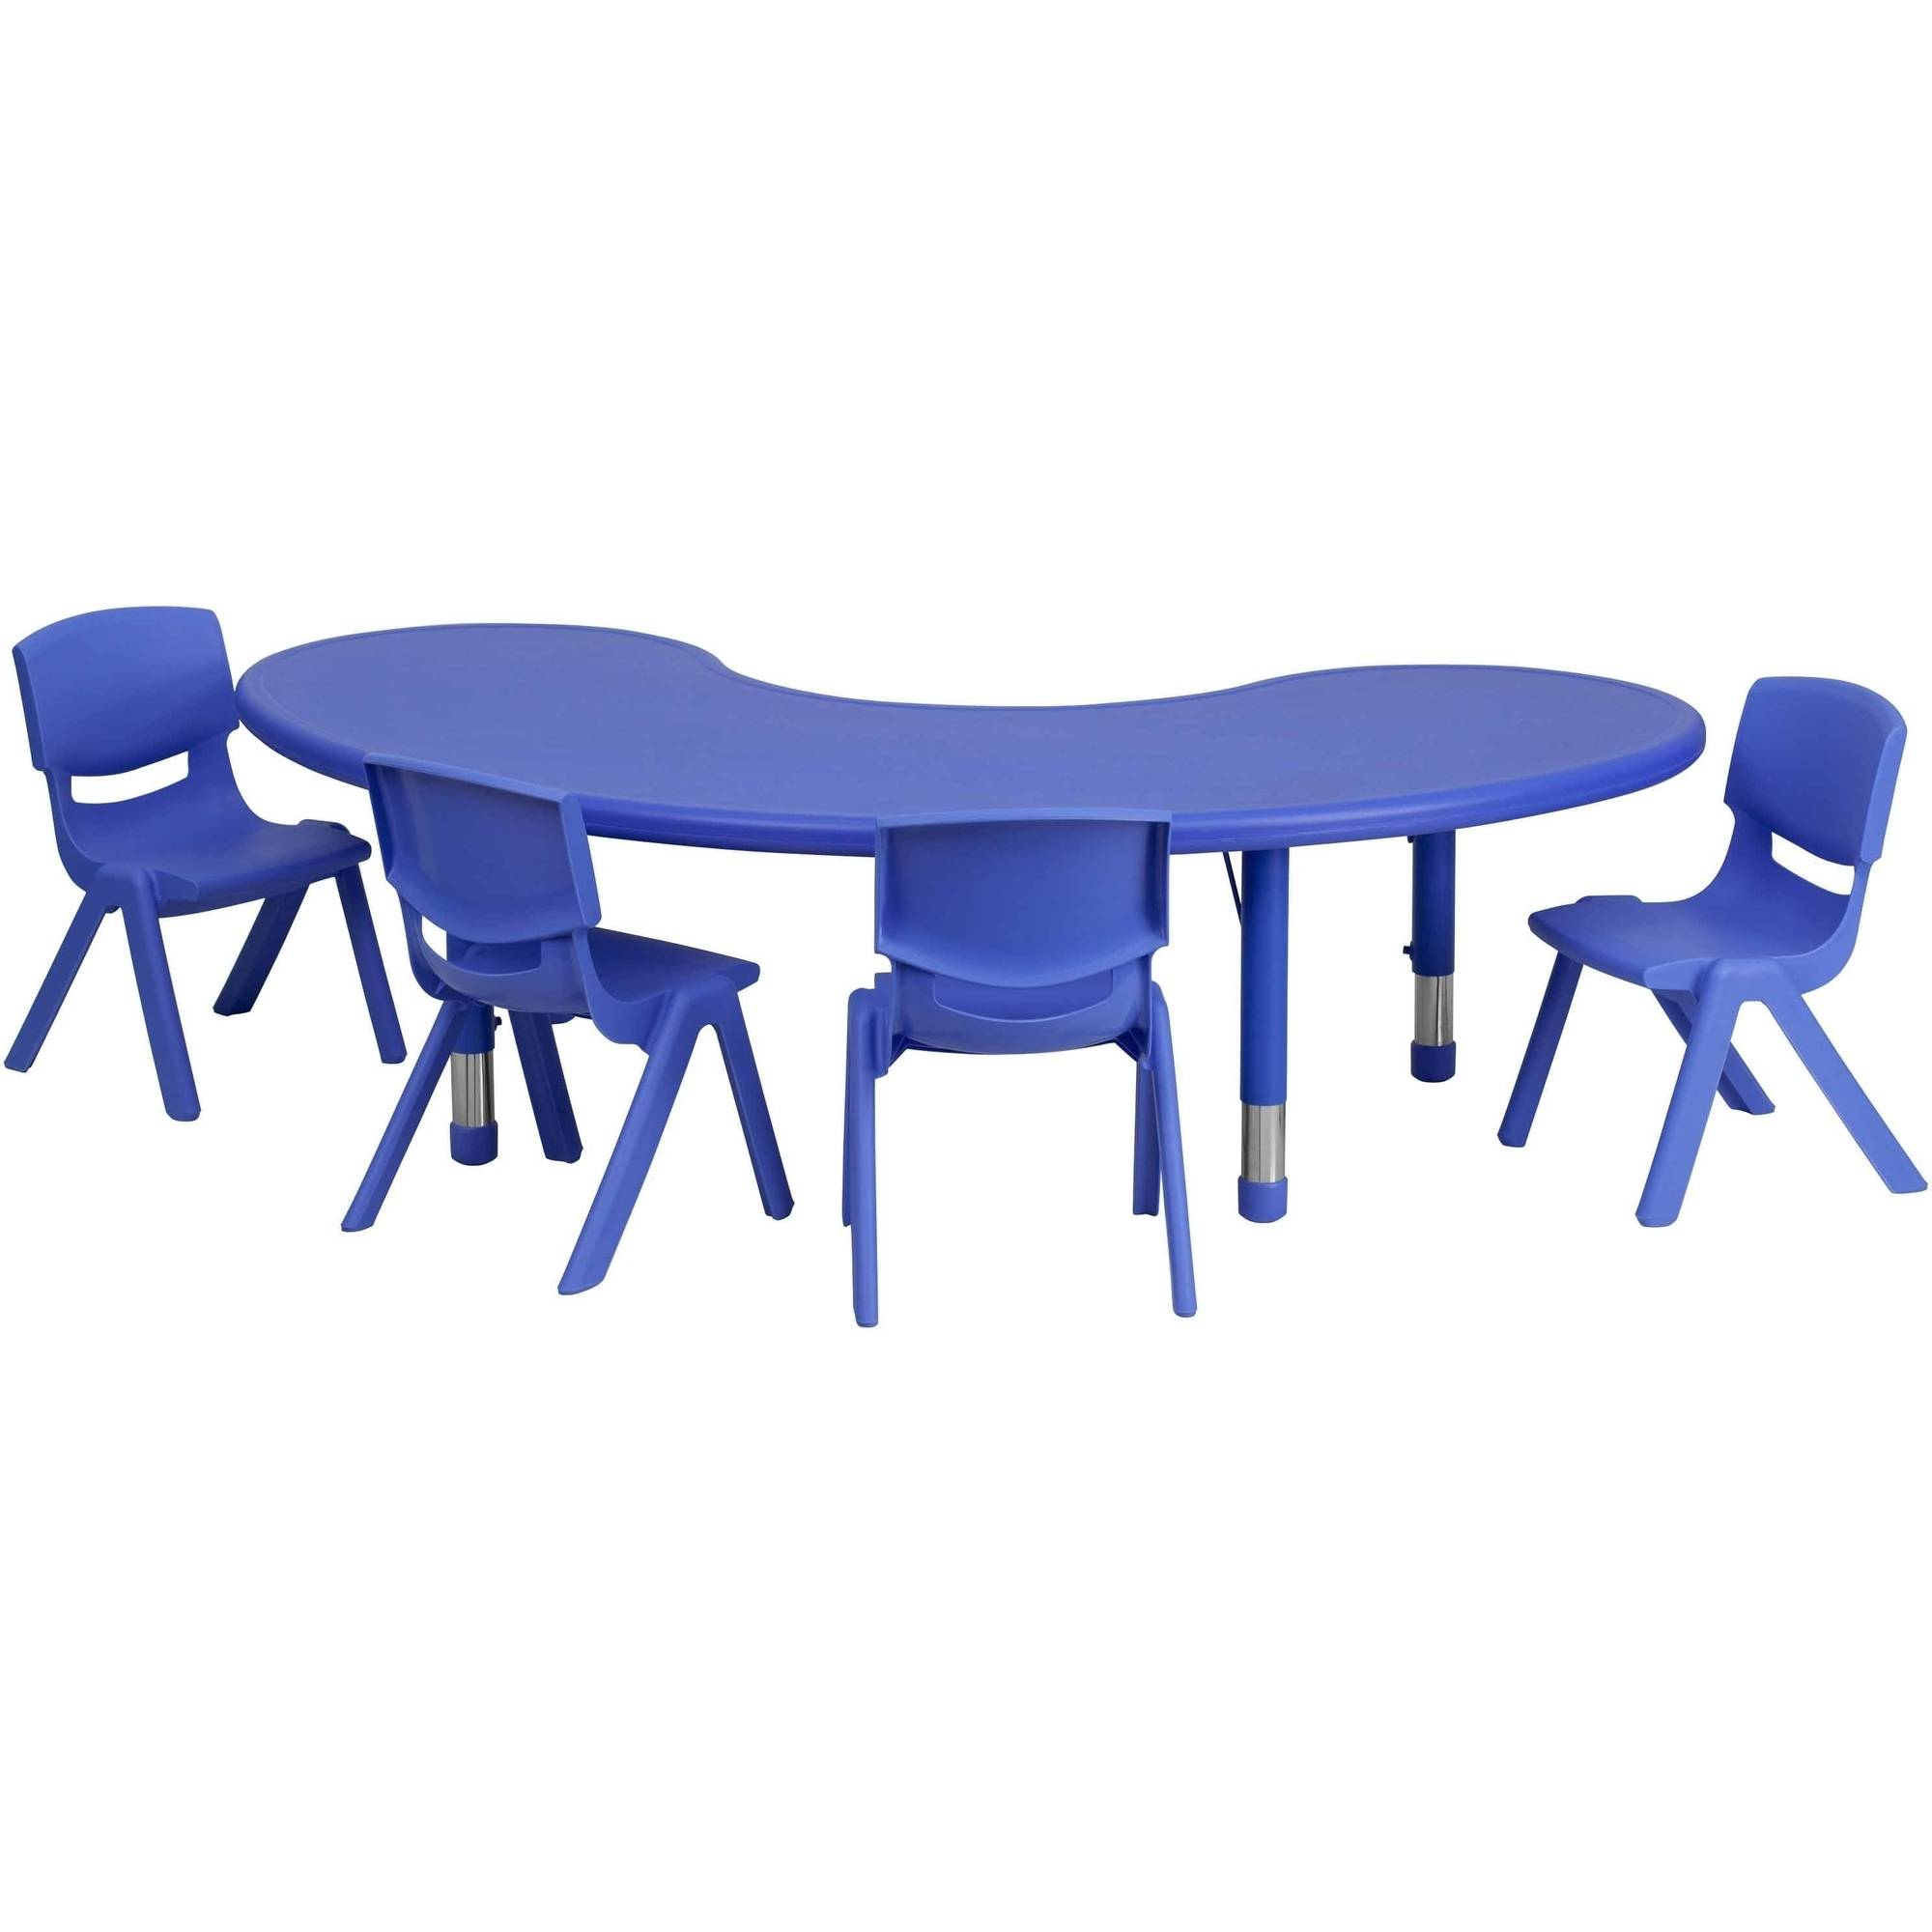 Flash Furniture 35u0027u0027W X 65u0027u0027L Adjustable Half Moon Plastic Activity Table  Set In Multiple Colors With 4 School Stack Chairs   Walmart.com